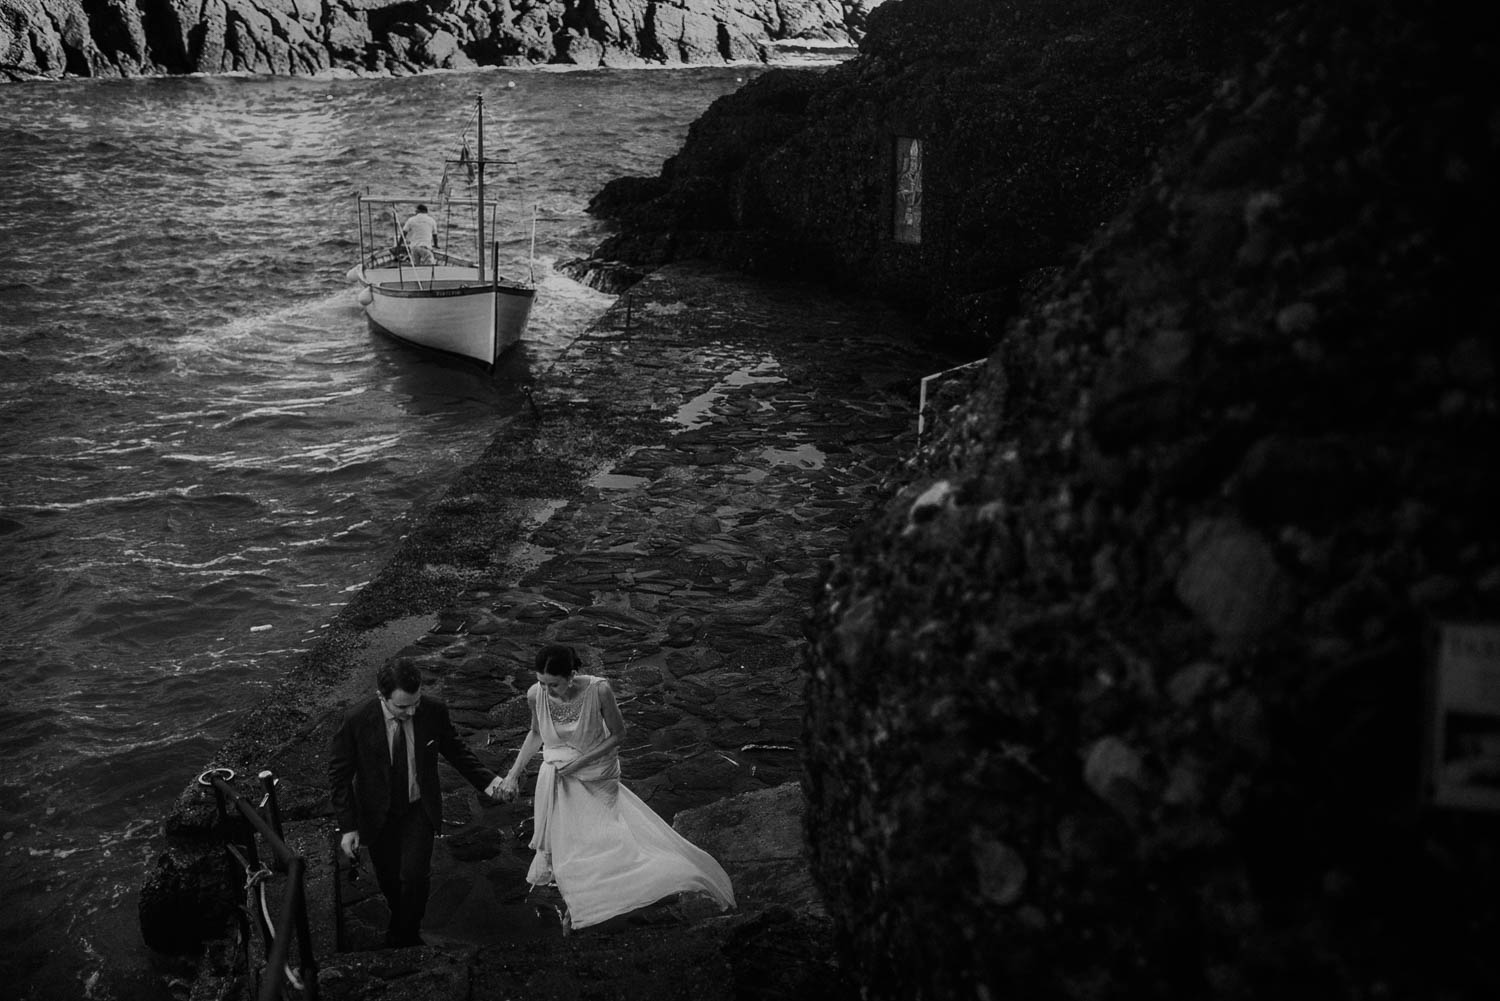 portofino-wedding-photography-rafal-bojar-1-45.jpg